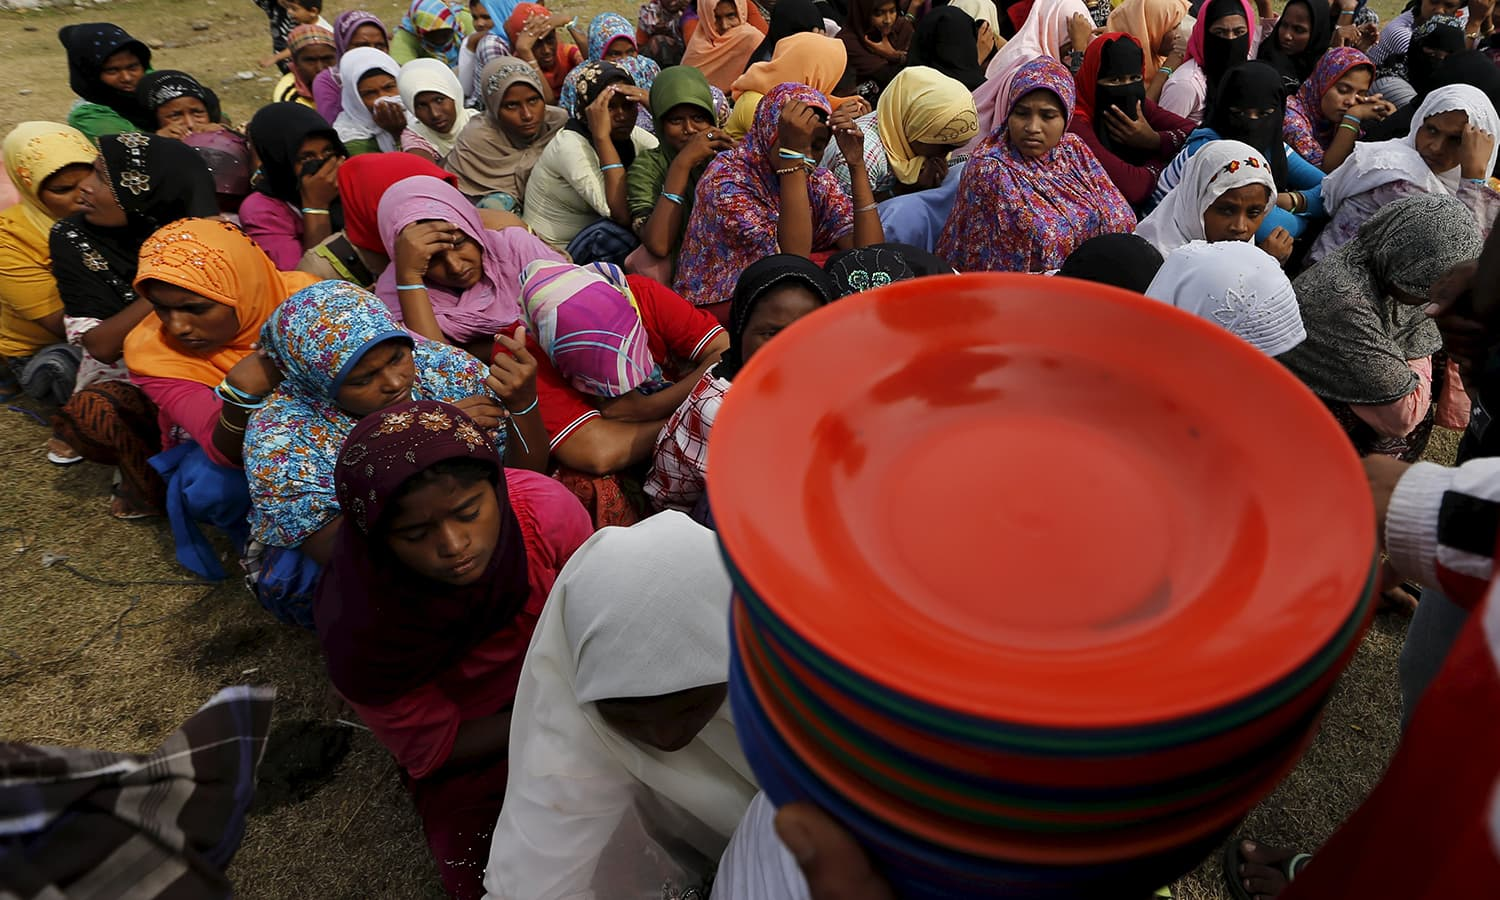 An Indonesian Red Cross volunteer holds plates for Rohingya migrants who arrived in Indonesia by boat during breakfast inside a temporary compound for refugee at Kuala Cangkoi village in Lhoksuko.